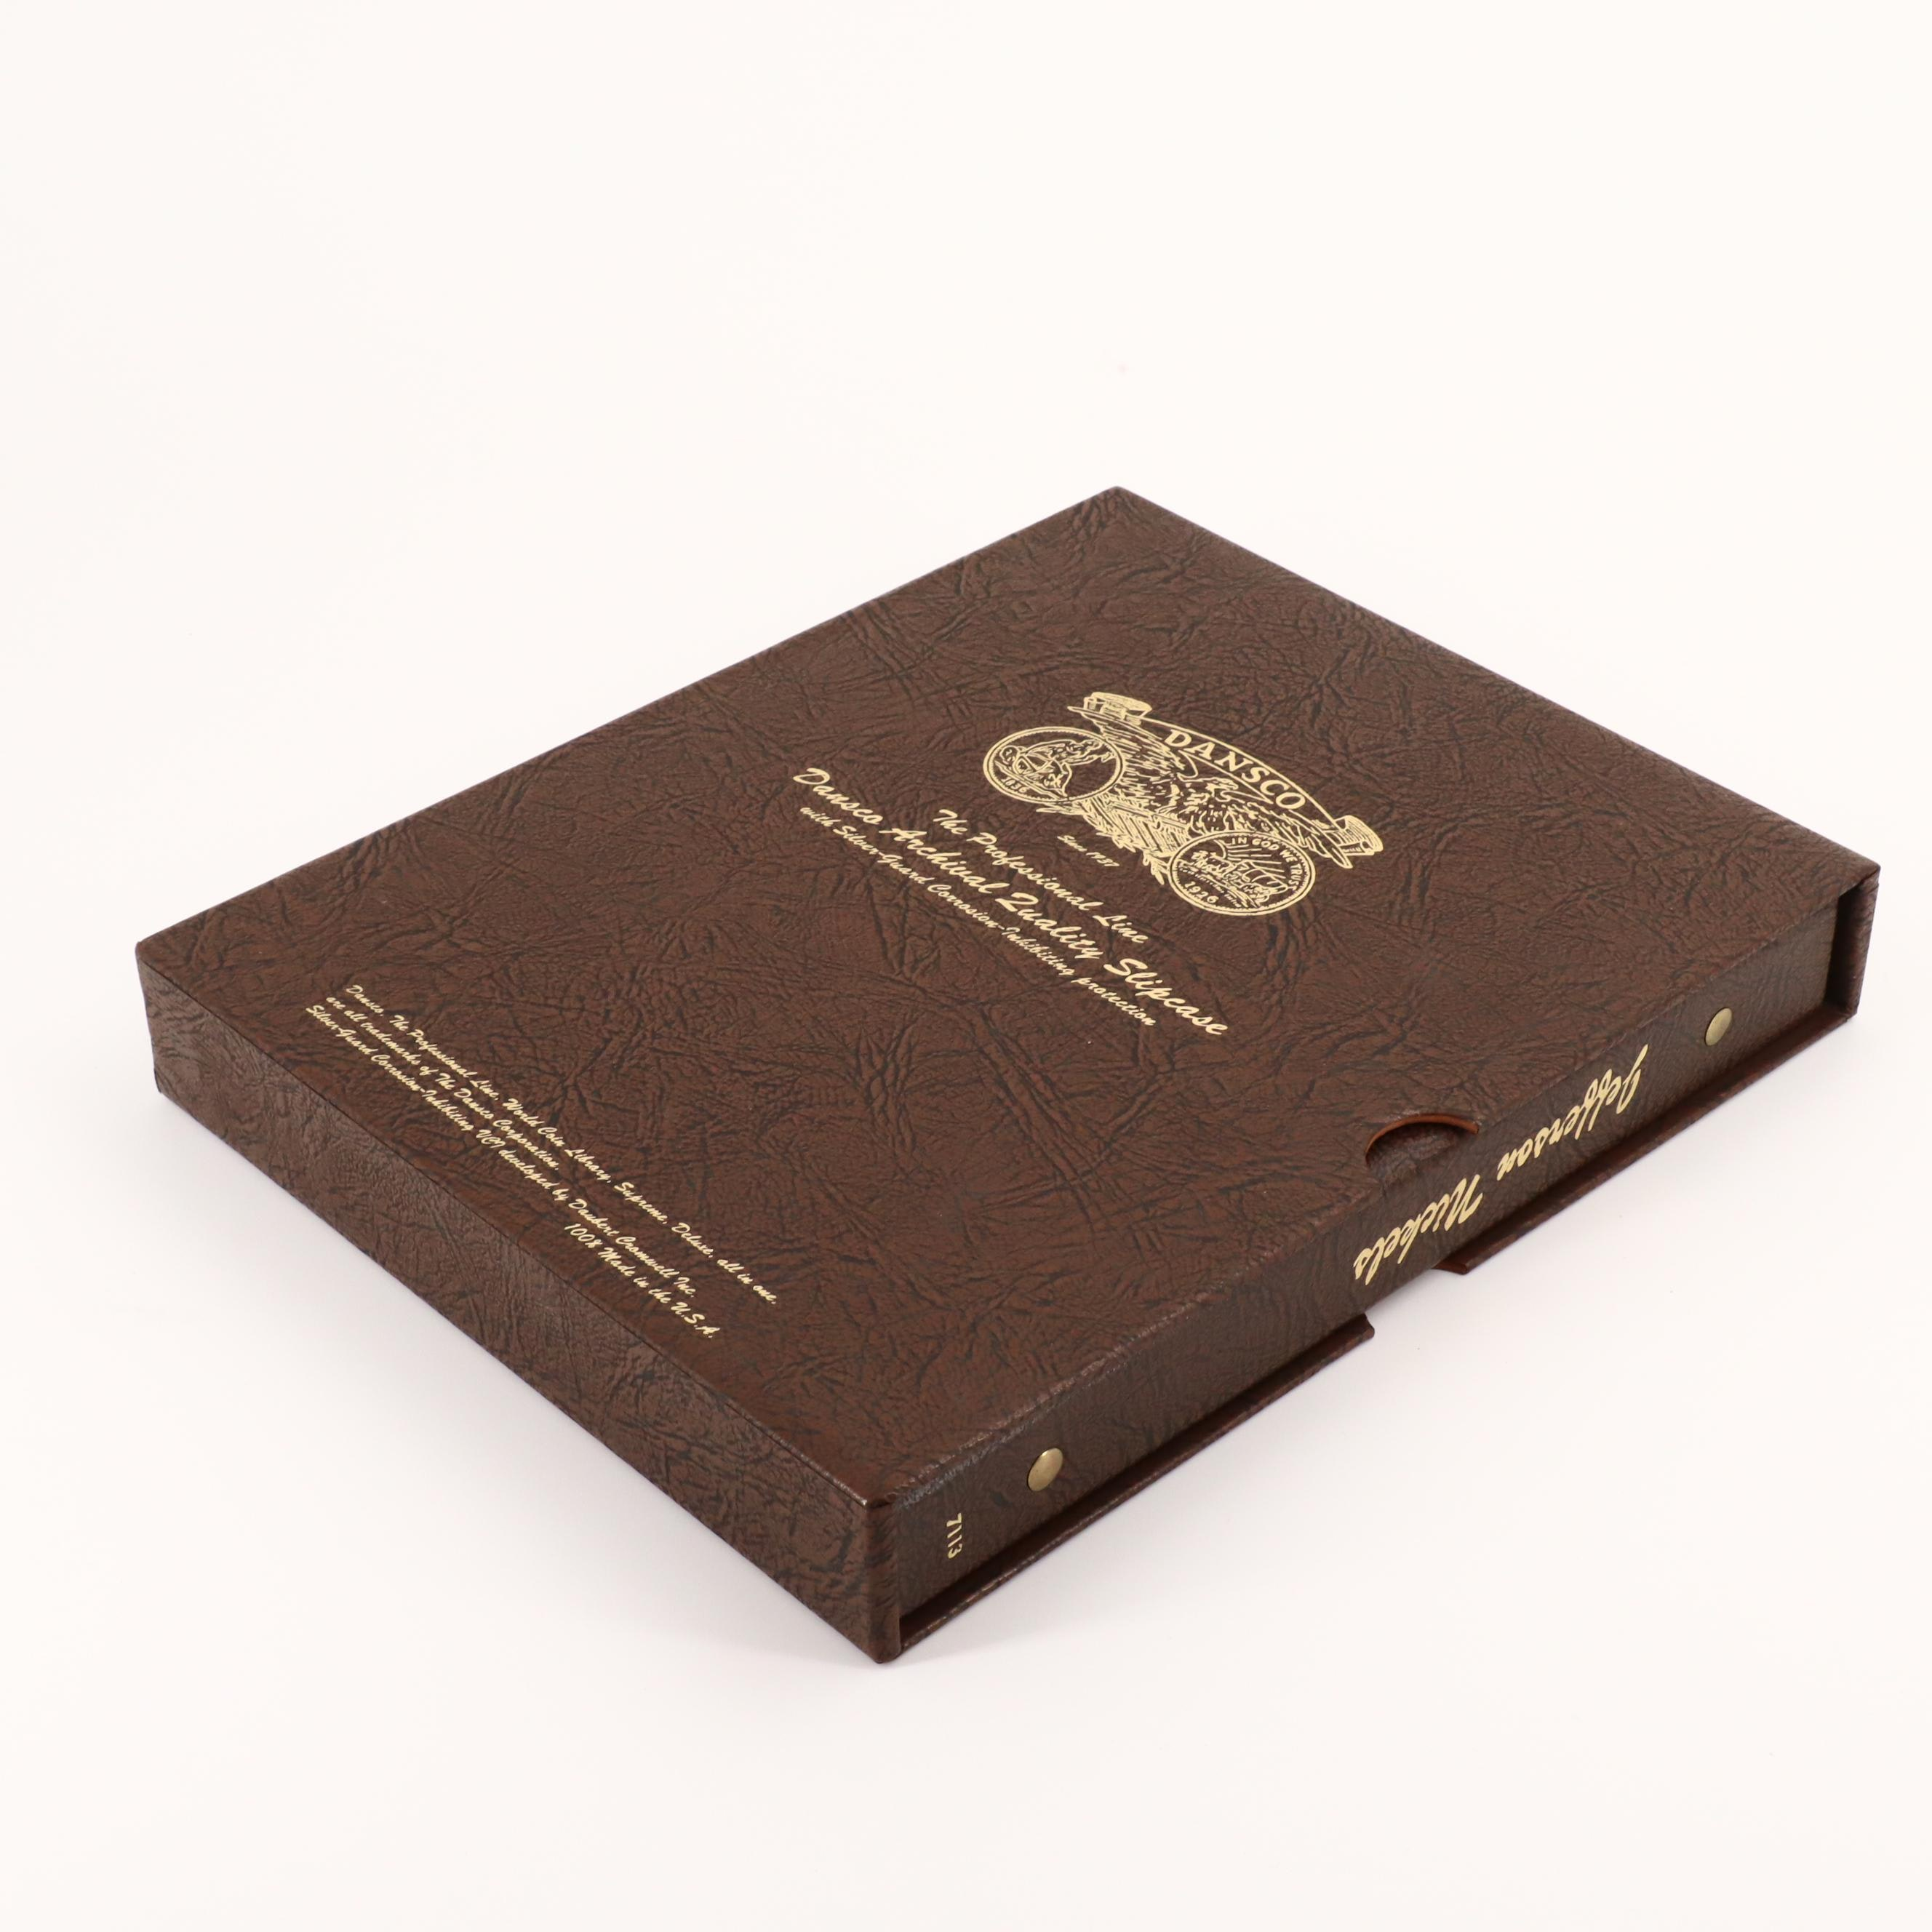 Nearly Complete Danso Album of Jefferson Nickels, 1938 to 2014